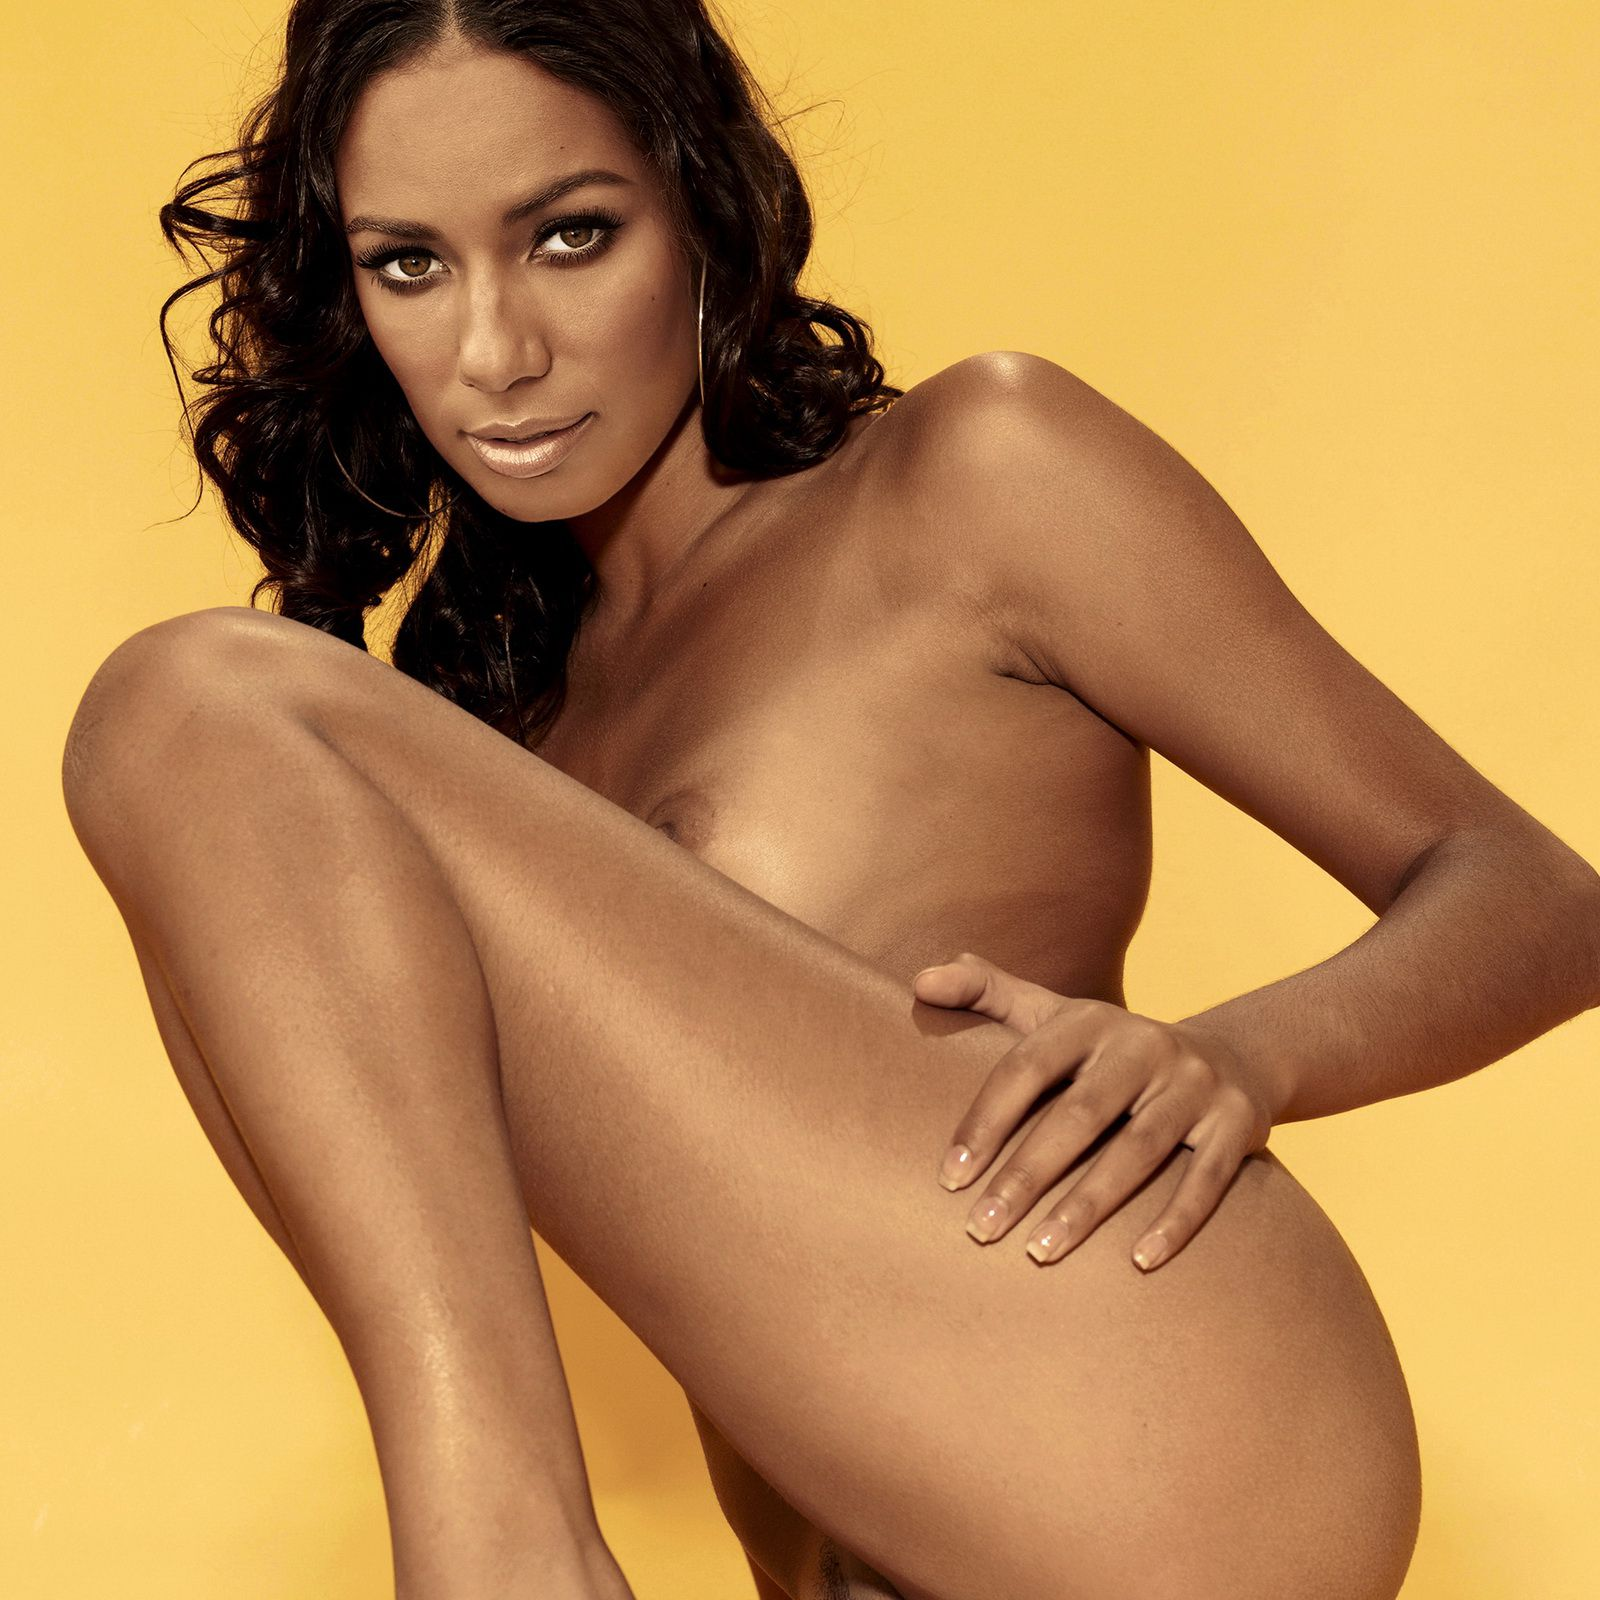 Leona lewis hot naked images